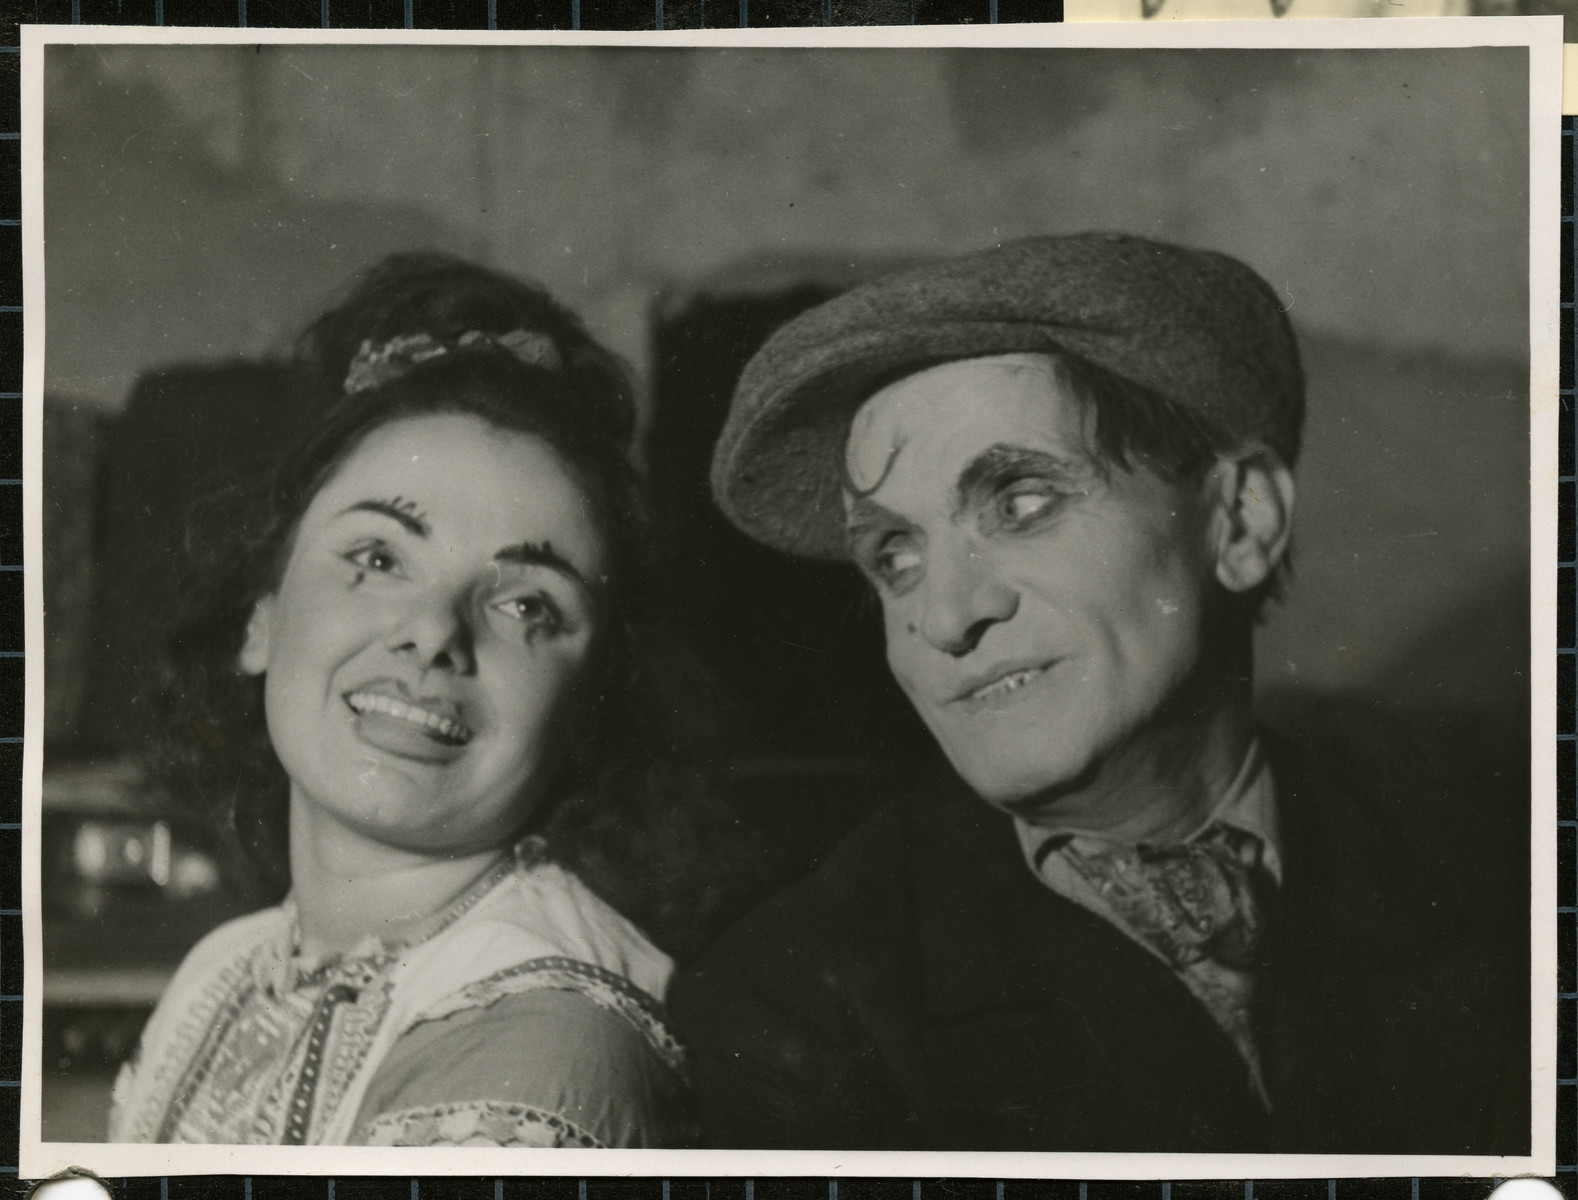 Close-up portrait of a male and female actor in the Bamberg Yiddish theater troupe.